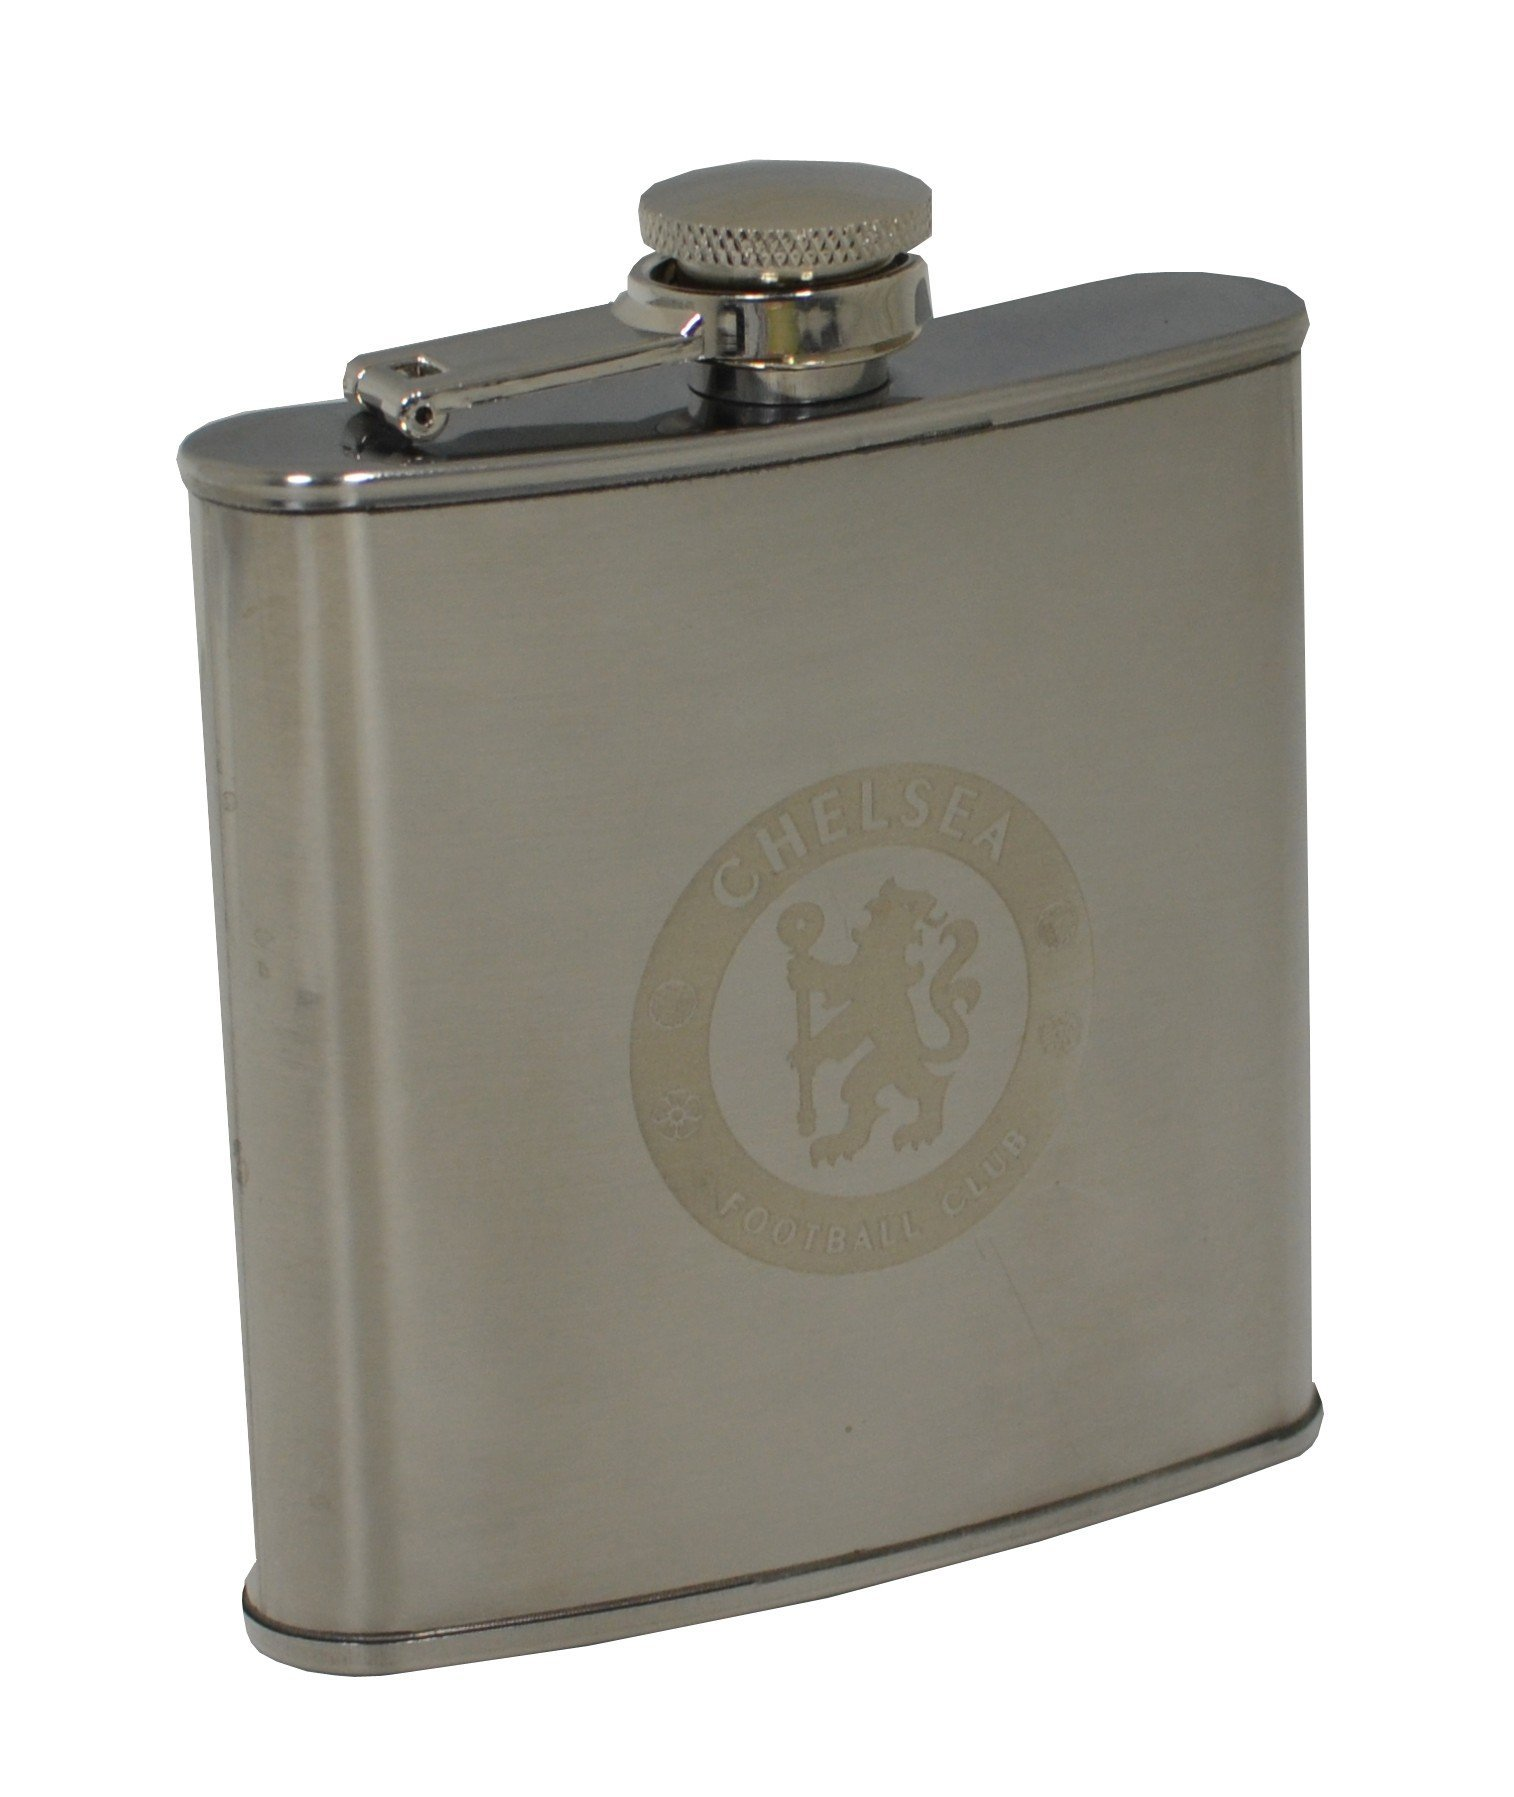 Chelsea Stainless Steel Hipflask